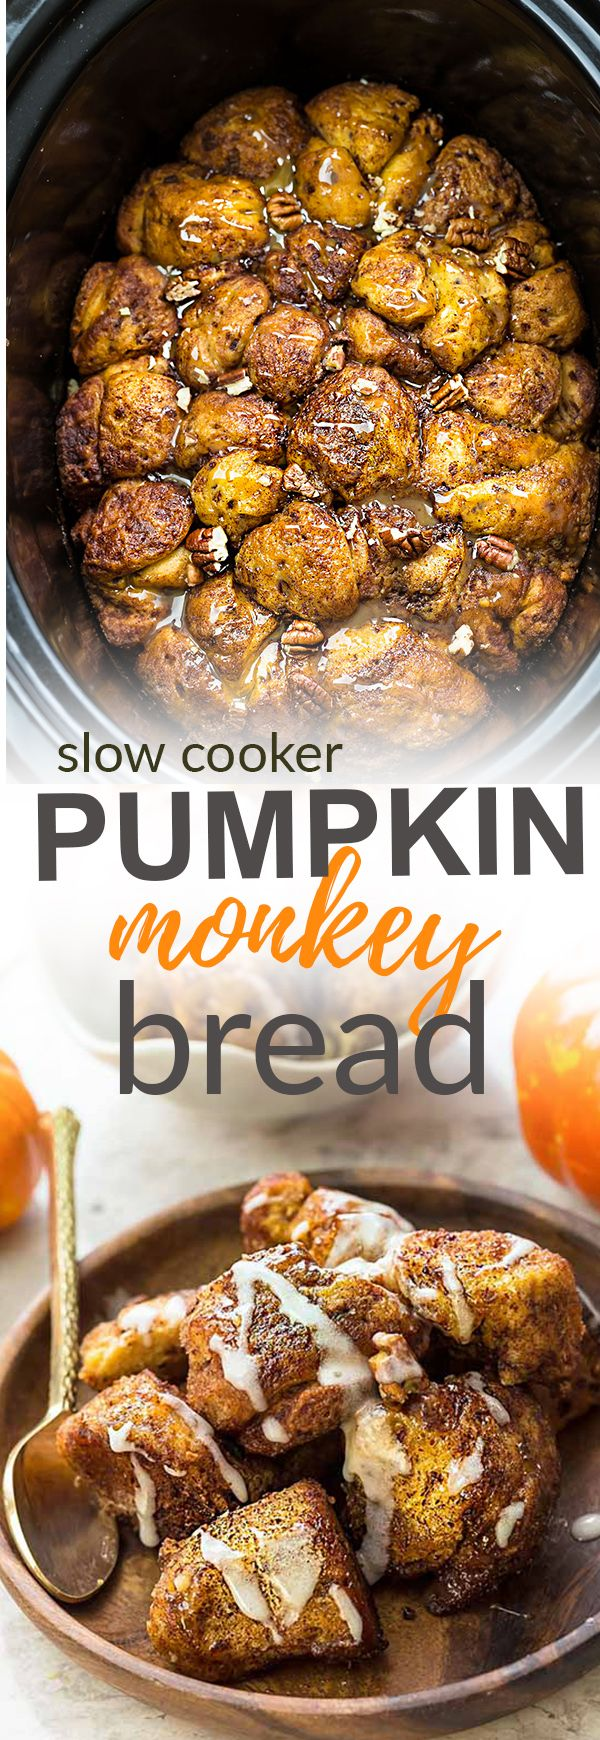 This recipe for Slow Cooker Pumpkin Monkey Bread makes the perfect easy breakfast or brunch. Best of all, it's so easy to make in your crock-pot with refrigerated cinnamon roll dough and it's full of cozy fall spices and a pumpkin cheesecake filling. So delicious for the holidays or any regular day.